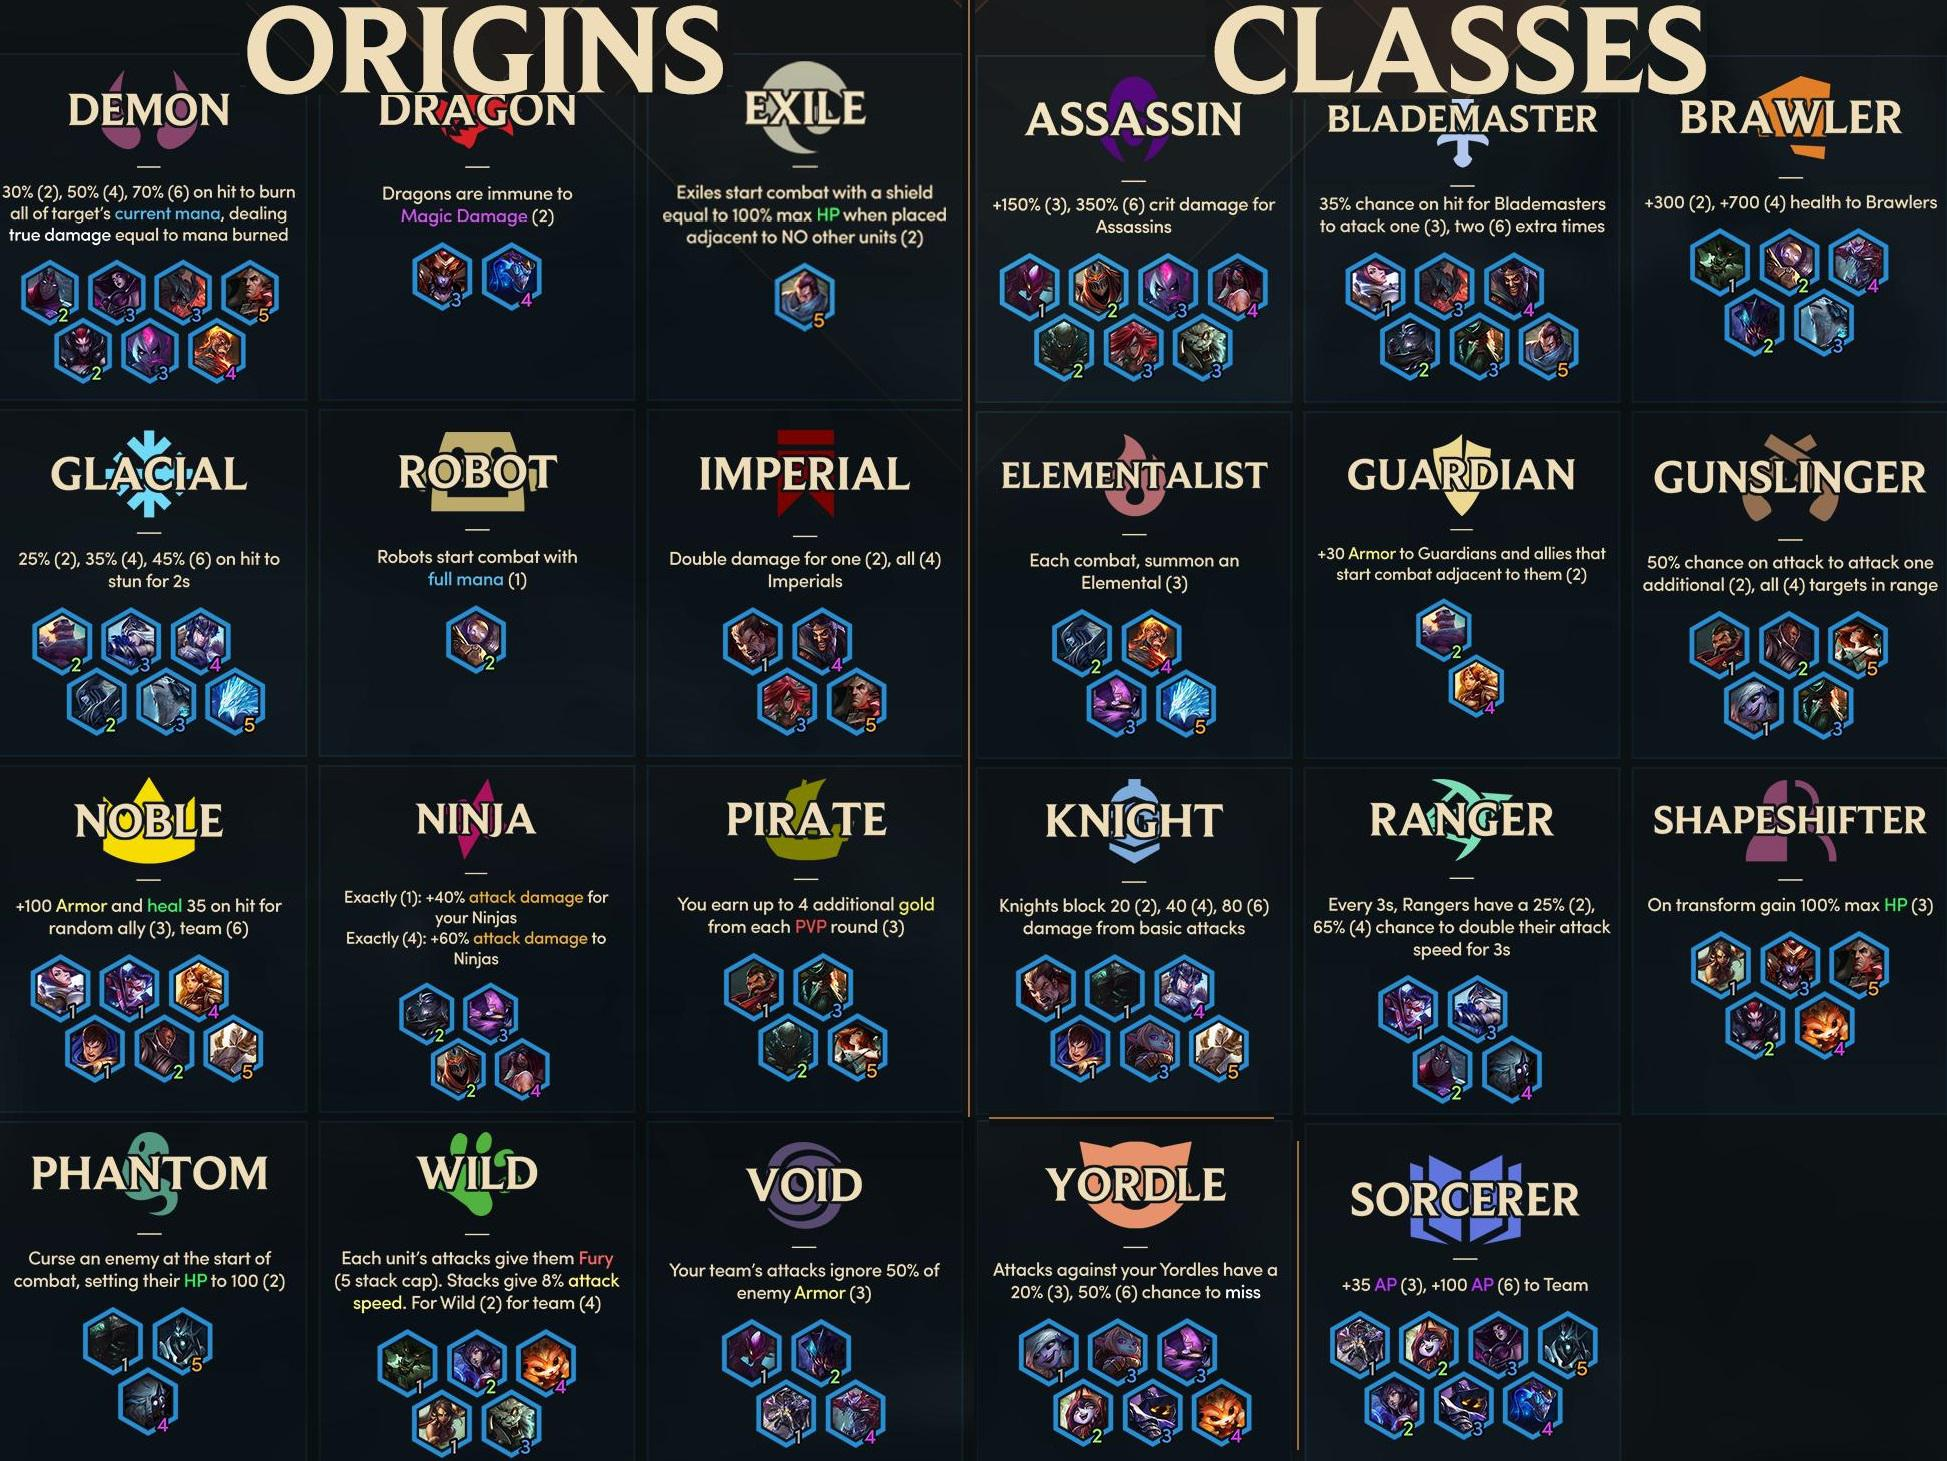 origins and classes cheat sheet